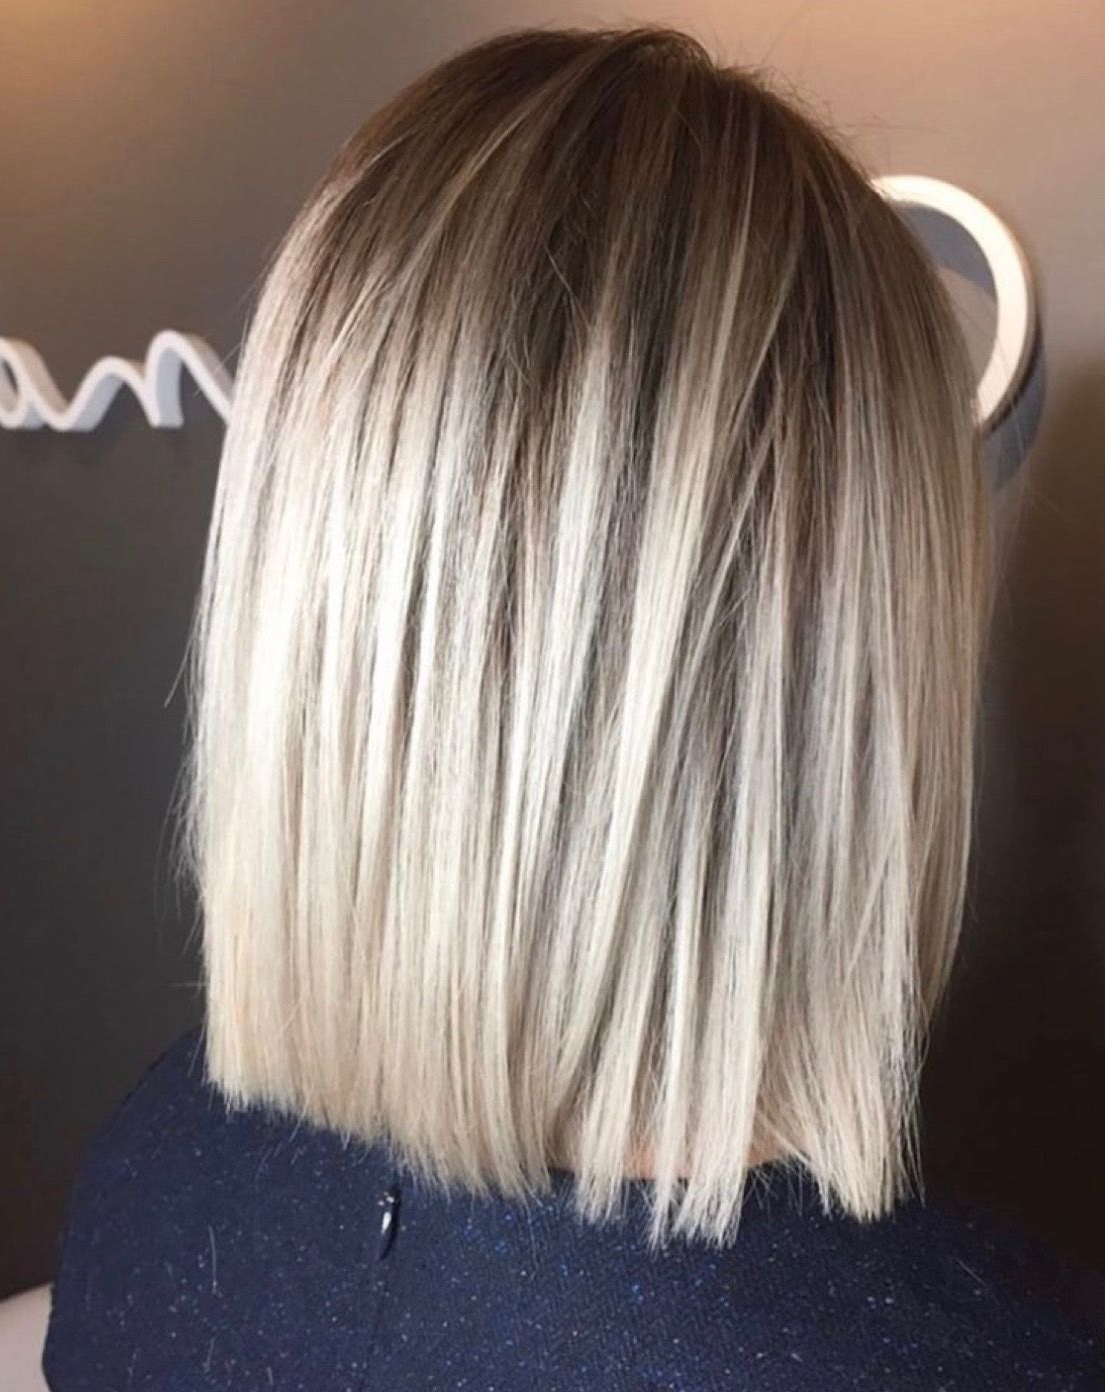 Love This Blunt One Length For The Perfect, Most Flattering Short Inside One Length Balayage Bob Hairstyles With Bangs (View 16 of 20)